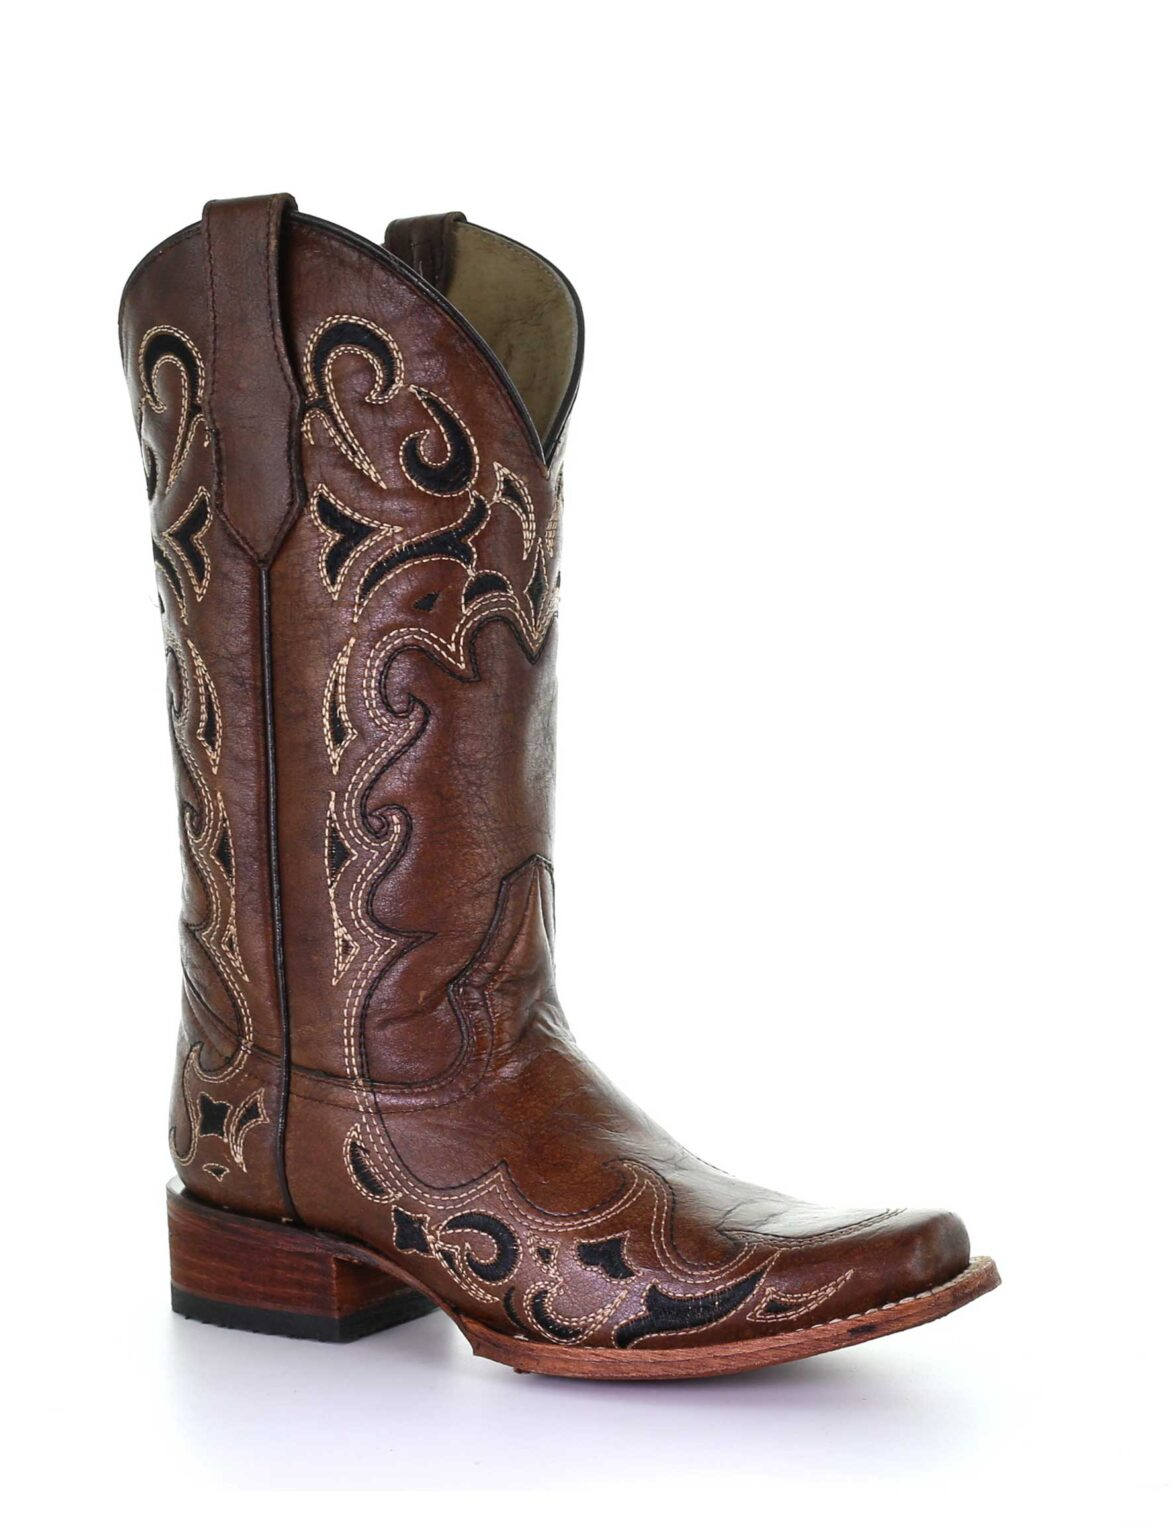 CORRAL Womens Circle G Brown/Black Embroidery Square Toe Boots (L5557-LD)